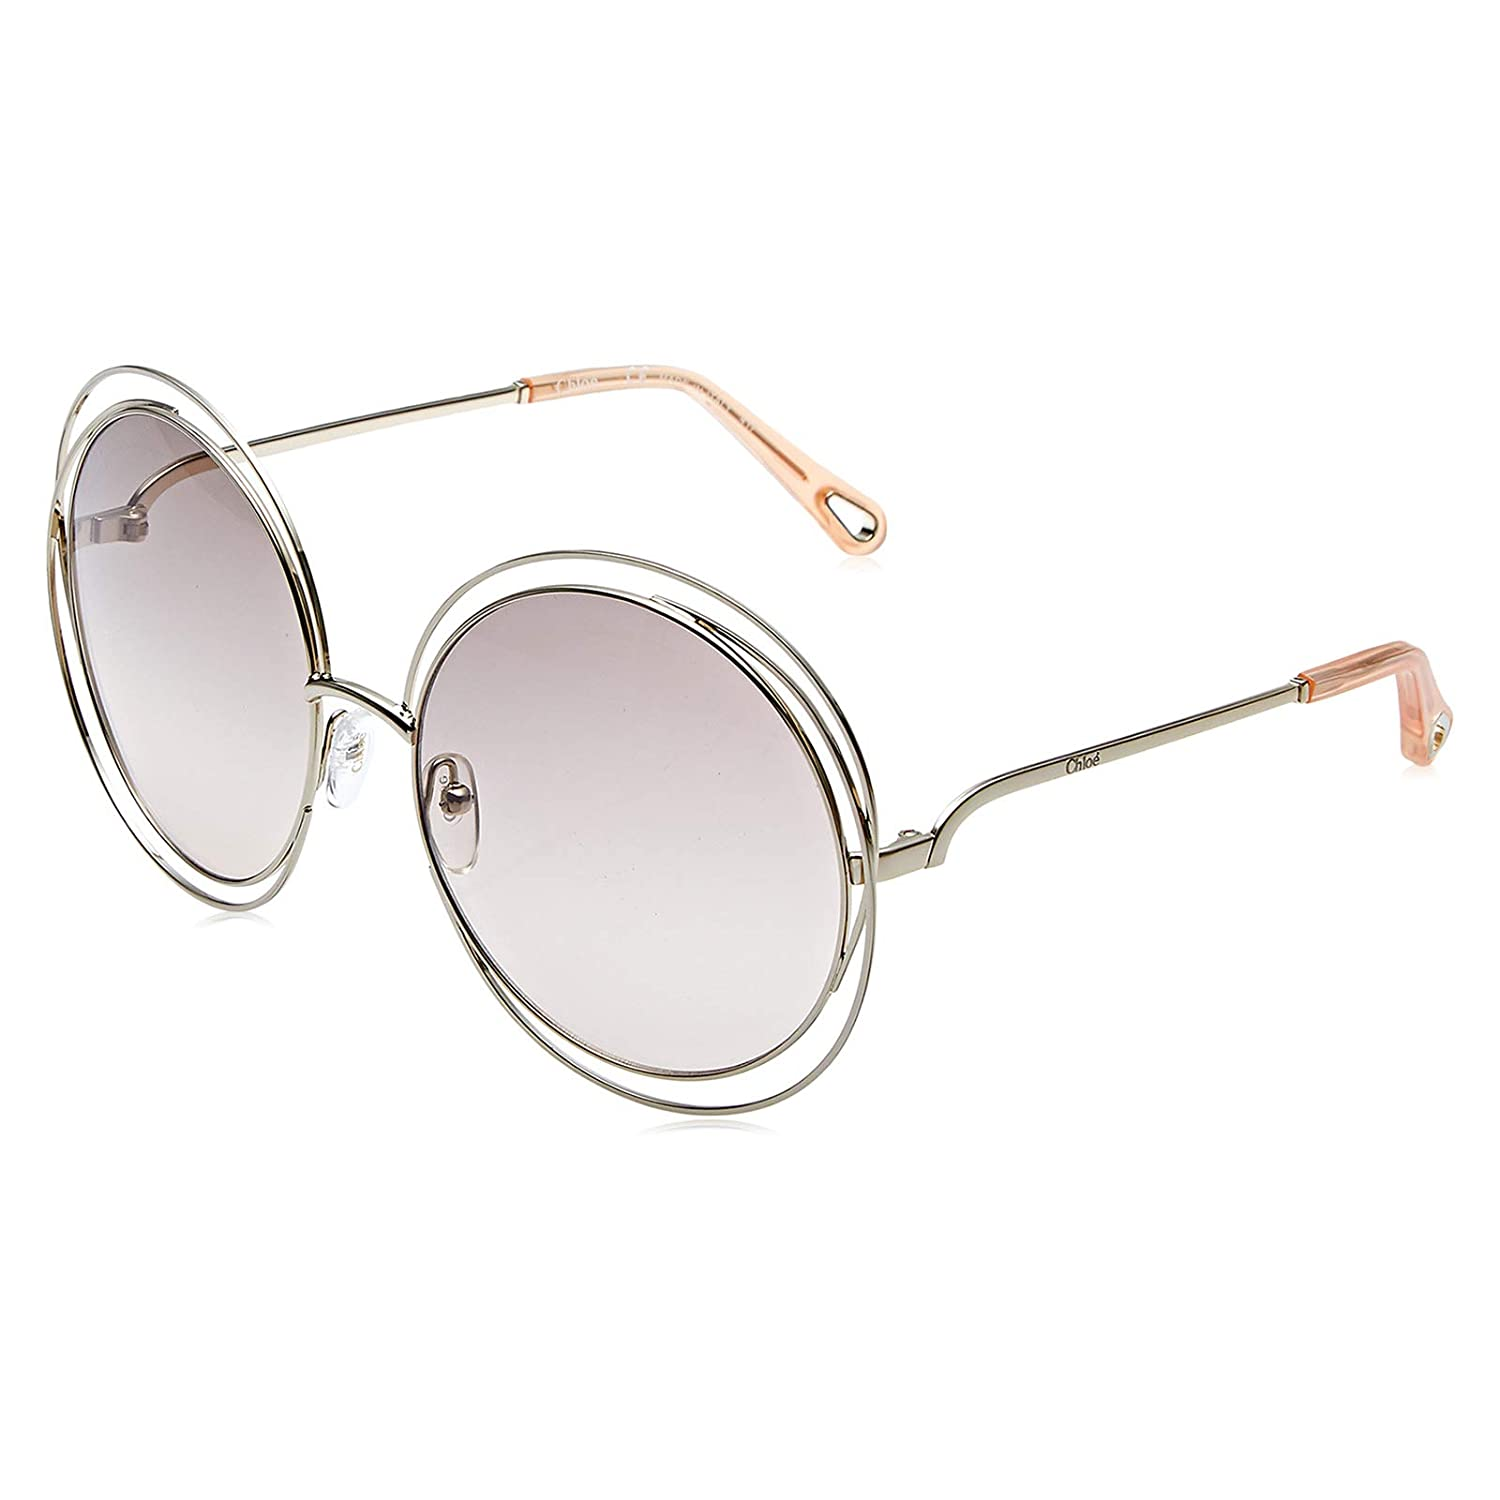 9db60a06ac Amazon.com  Chloe CE114SD 724 Gold Peach Carlina Round Sunglasses Lens  Category 1 Size 58  Chloe  Clothing